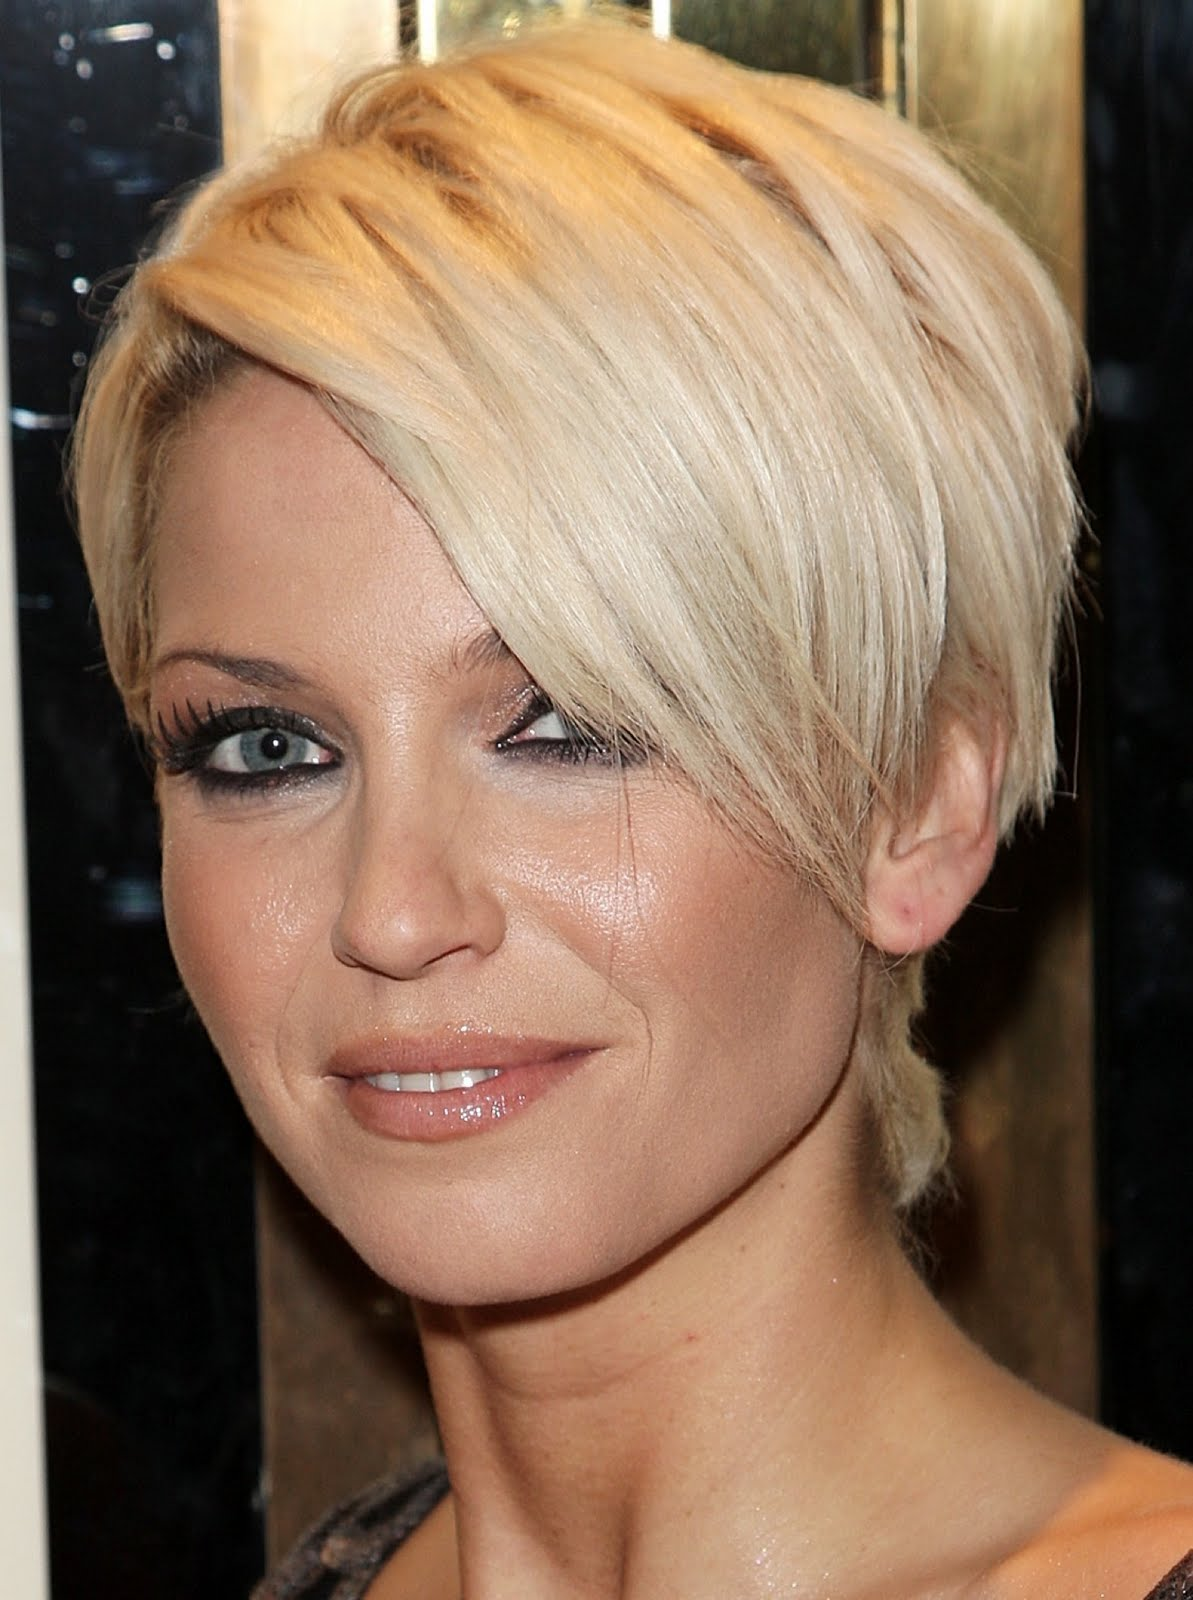 Beautiful Short Hairstyles For Women Over 40 Short-Hairstyles-For-Women-Over-40-with-Sexy-Layers